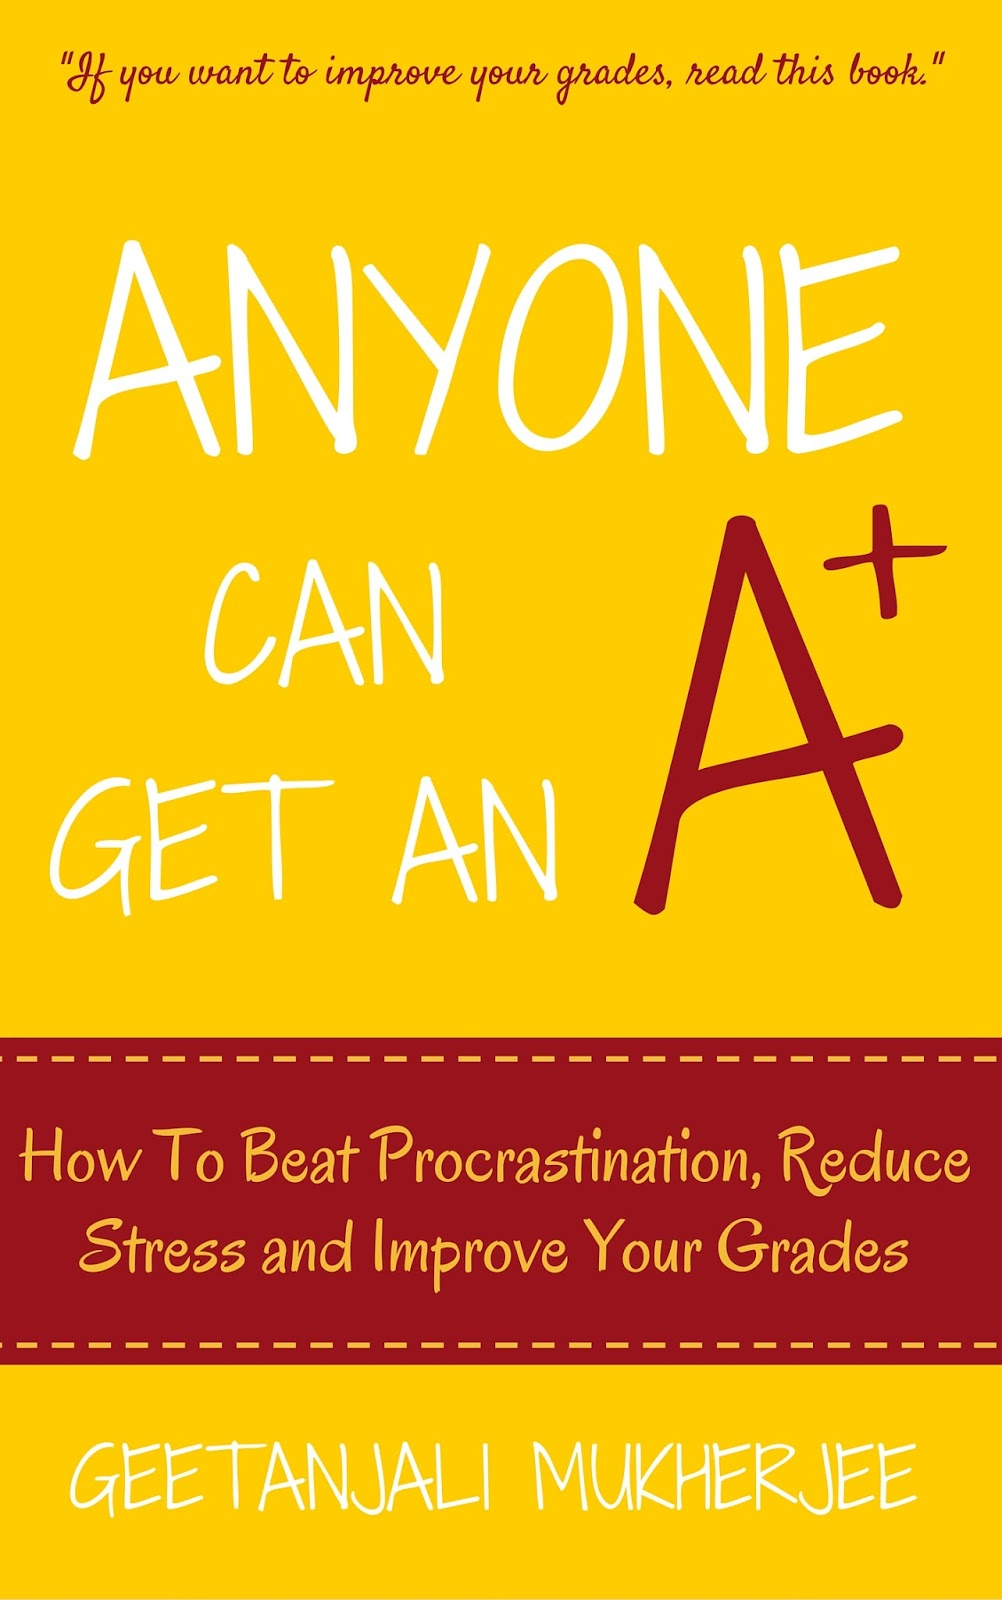 creativity work anyone can get an a how to beat anyone can get an a how to beat procrastination reduce stress and improve your grades